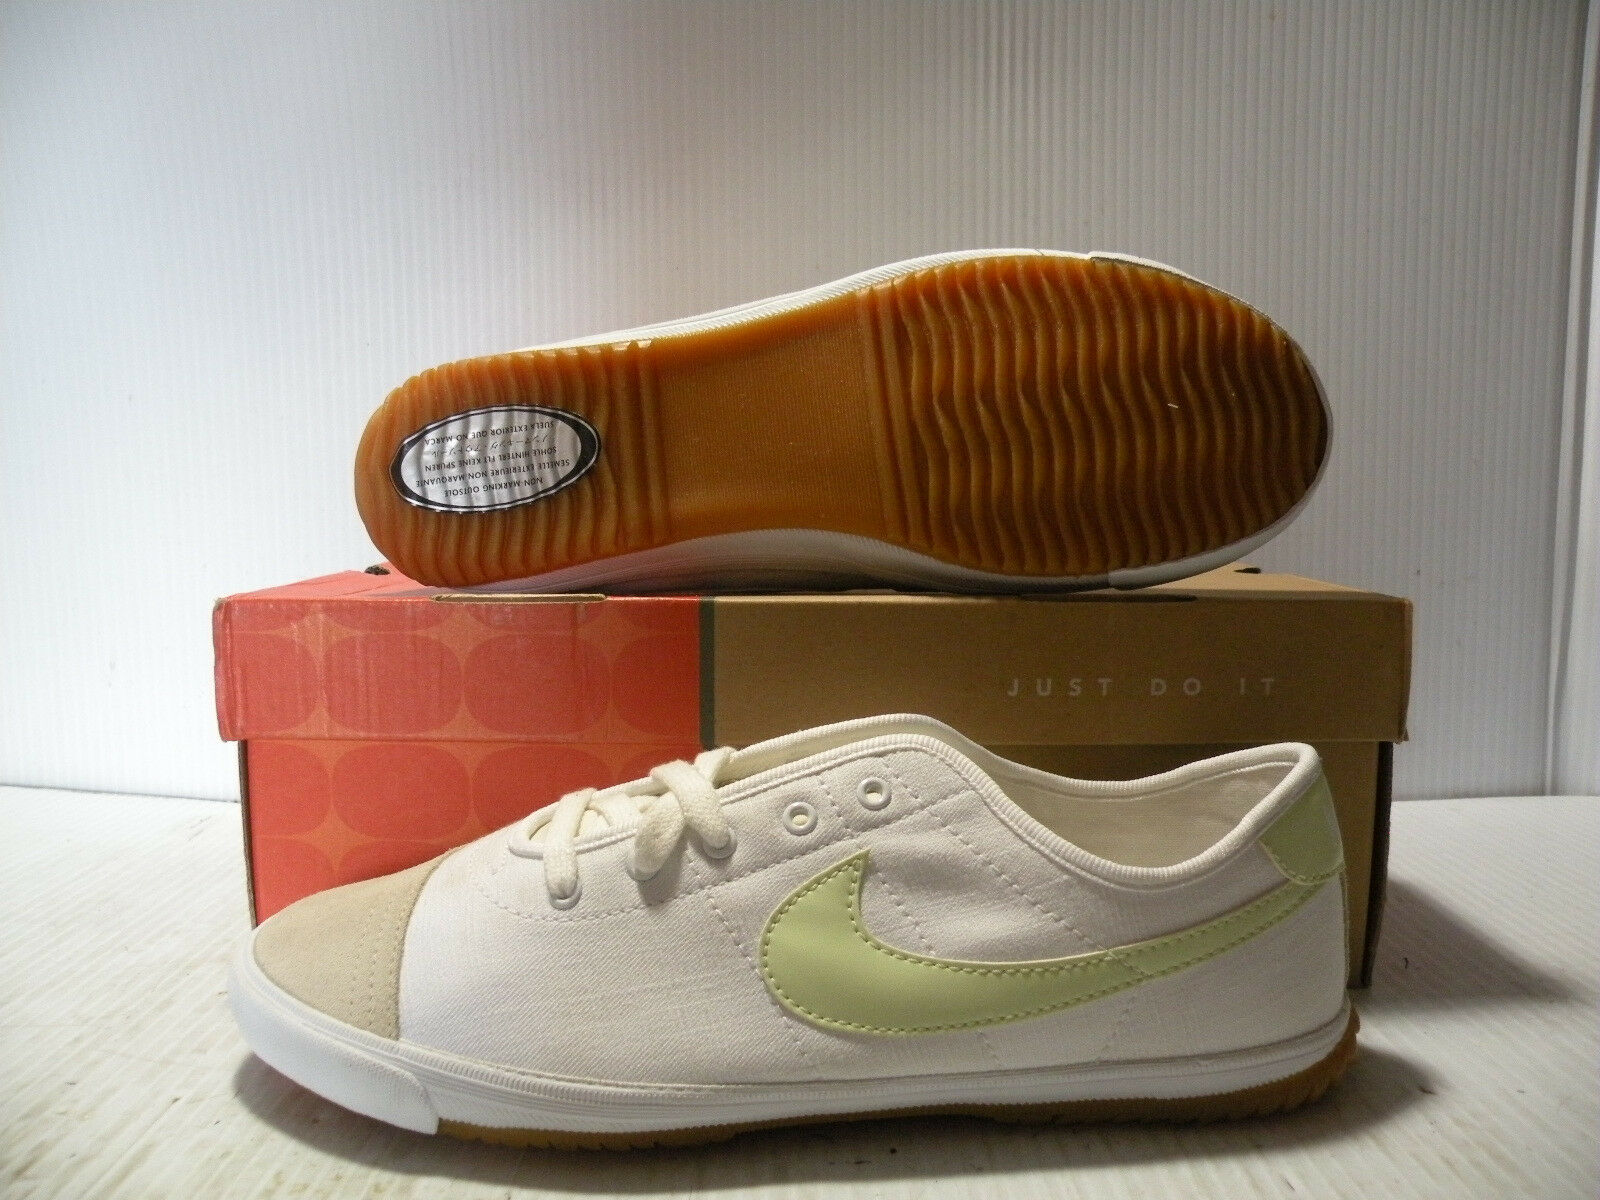 NIKE VOLLEY LOW SNEAKERS WOMEN SHOES WHITE/GREEN 310267-131 SIZE 9.5 NEW